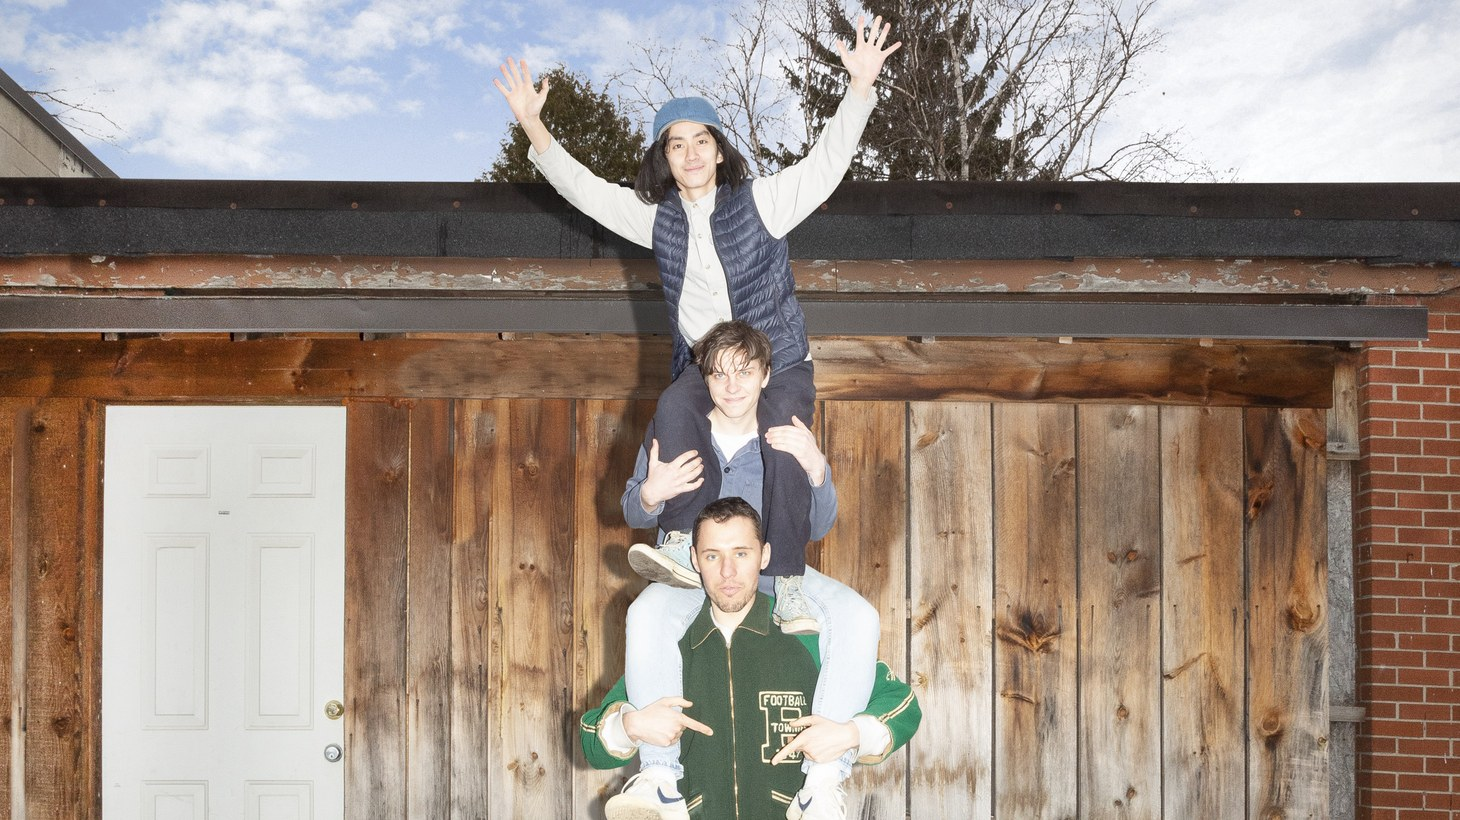 """""""Nervous""""is a love song, but it's also the 5th song Jonah Yano has ever written! Yano says it's also a dream come true for his good fortune of working with the talented jazz/production duo BADBADNOTGOOD. Go grab a partner and sway."""